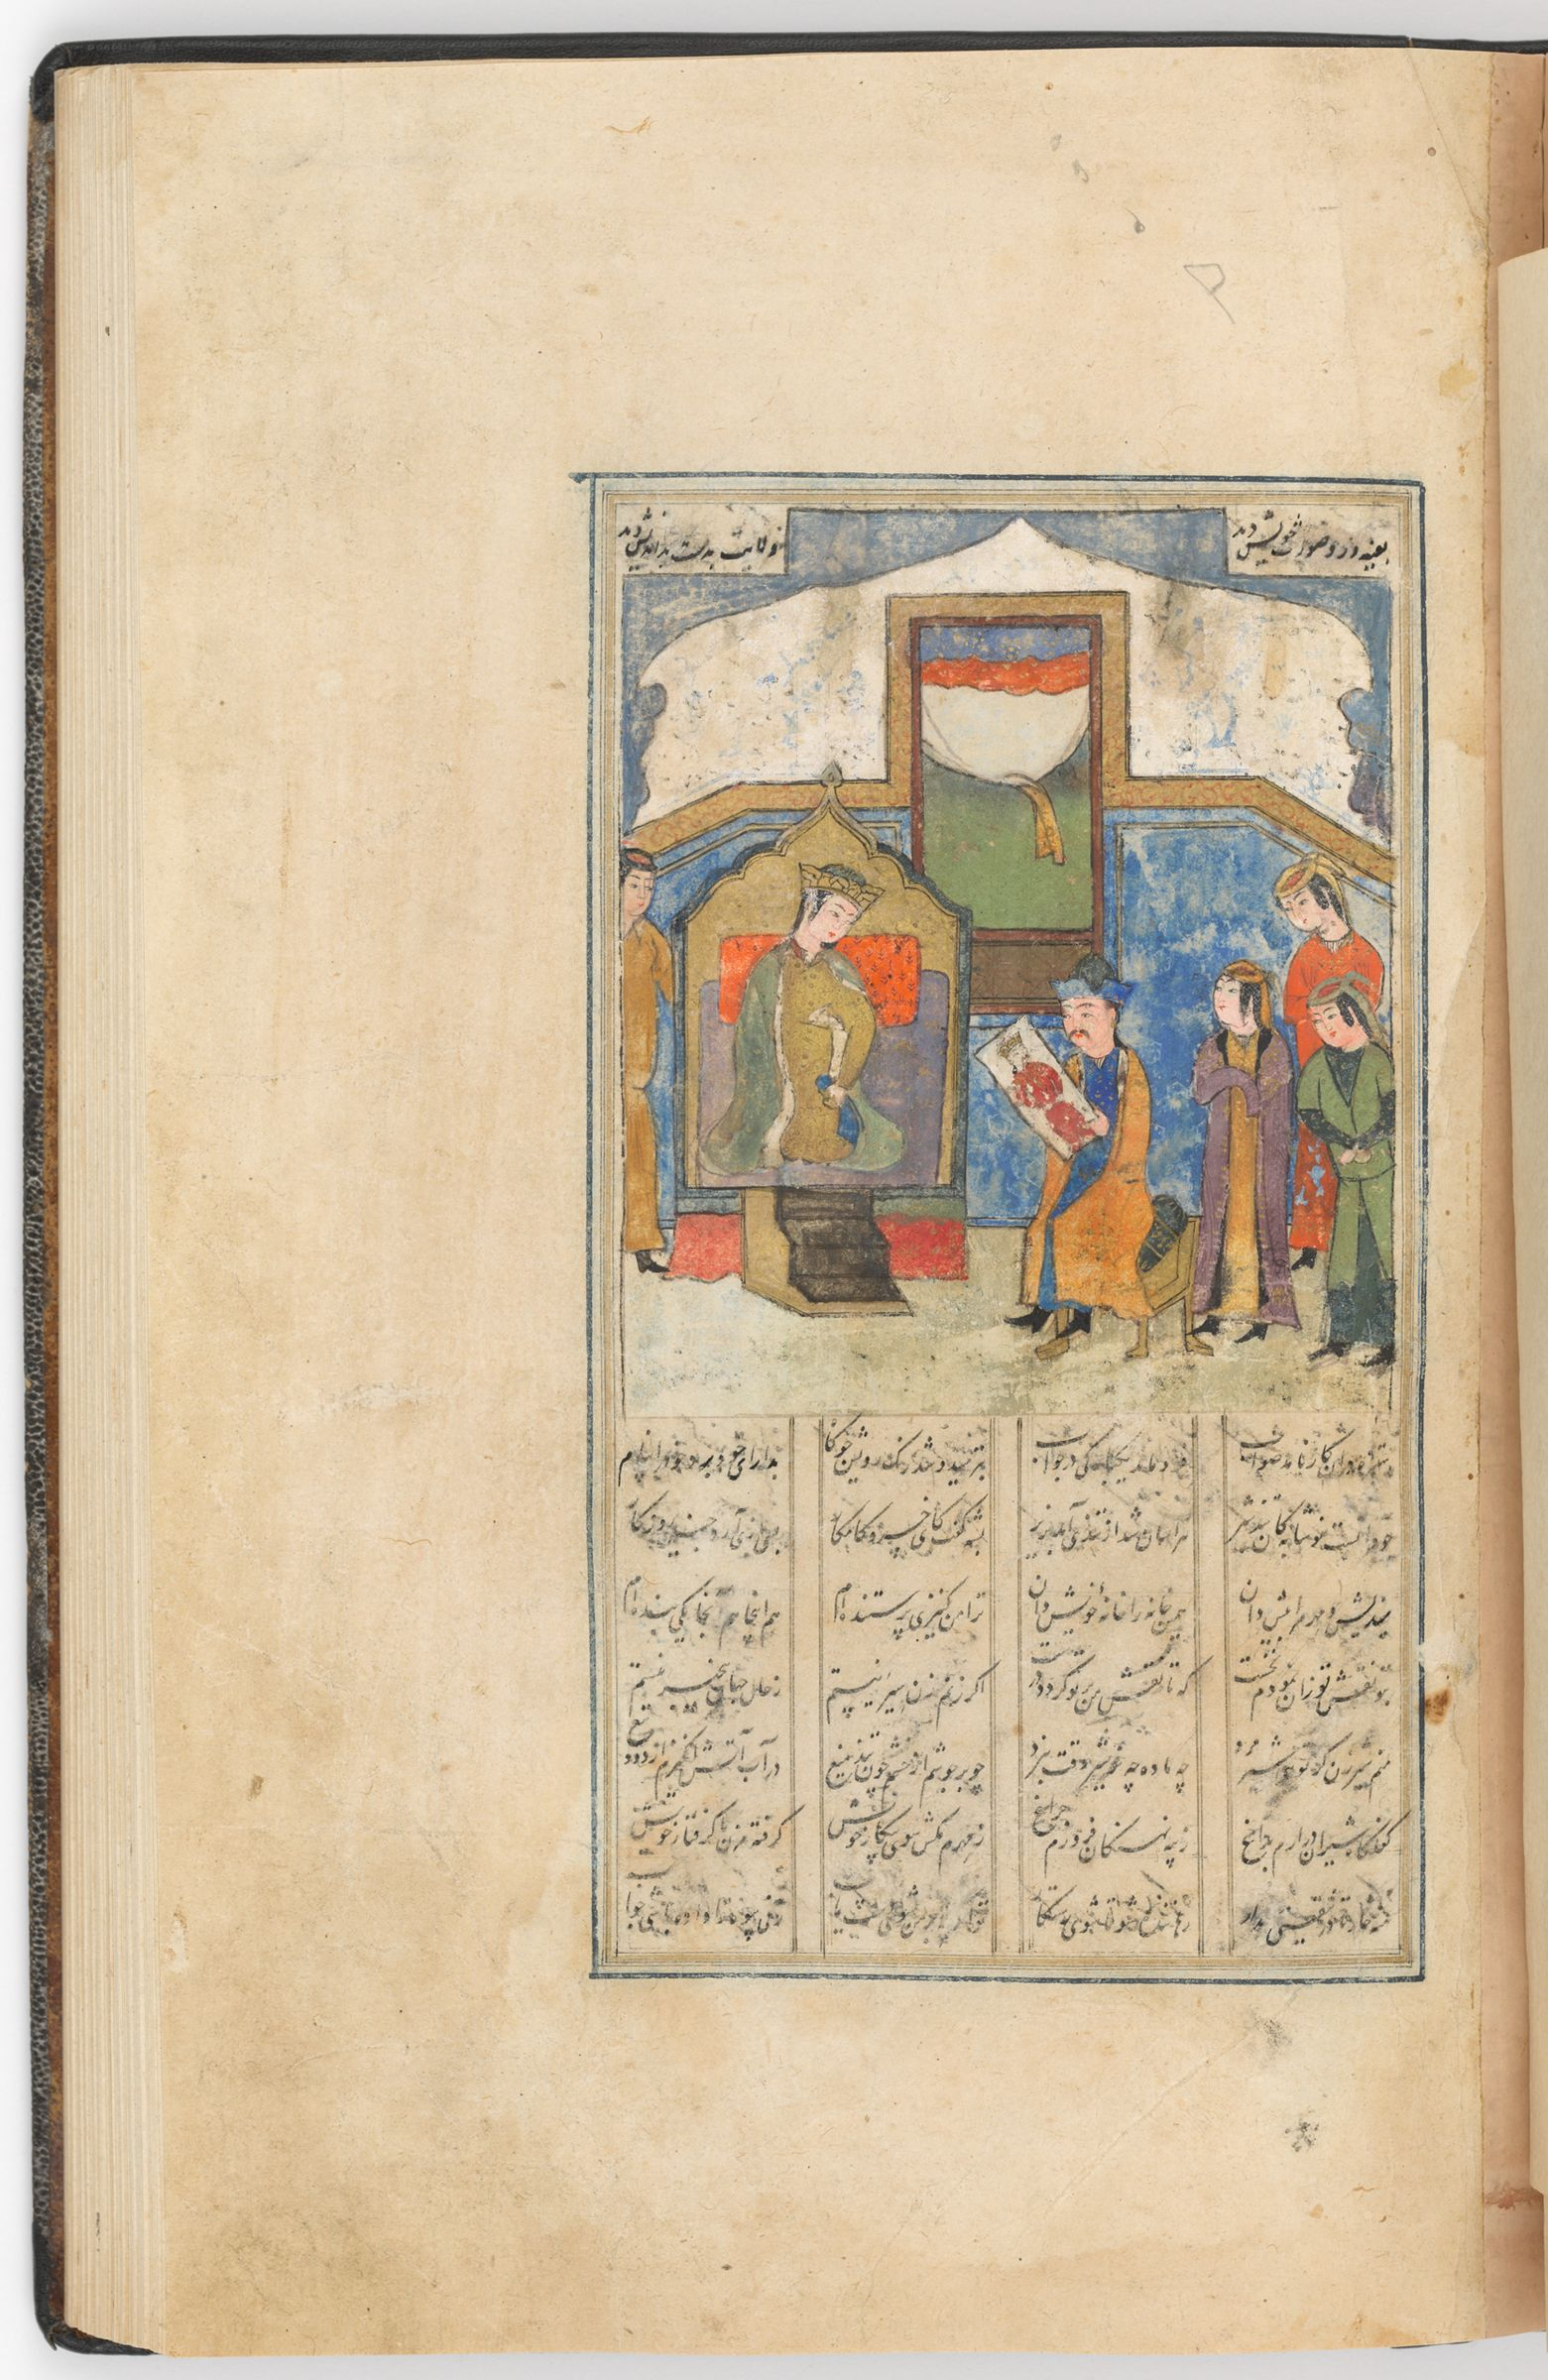 Nushaba Recognizing Iskandar By His Portrait (Text Verso; Painting Recto Of Folio 291), Painting From A Manuscript Of The Khamsa By Nizami